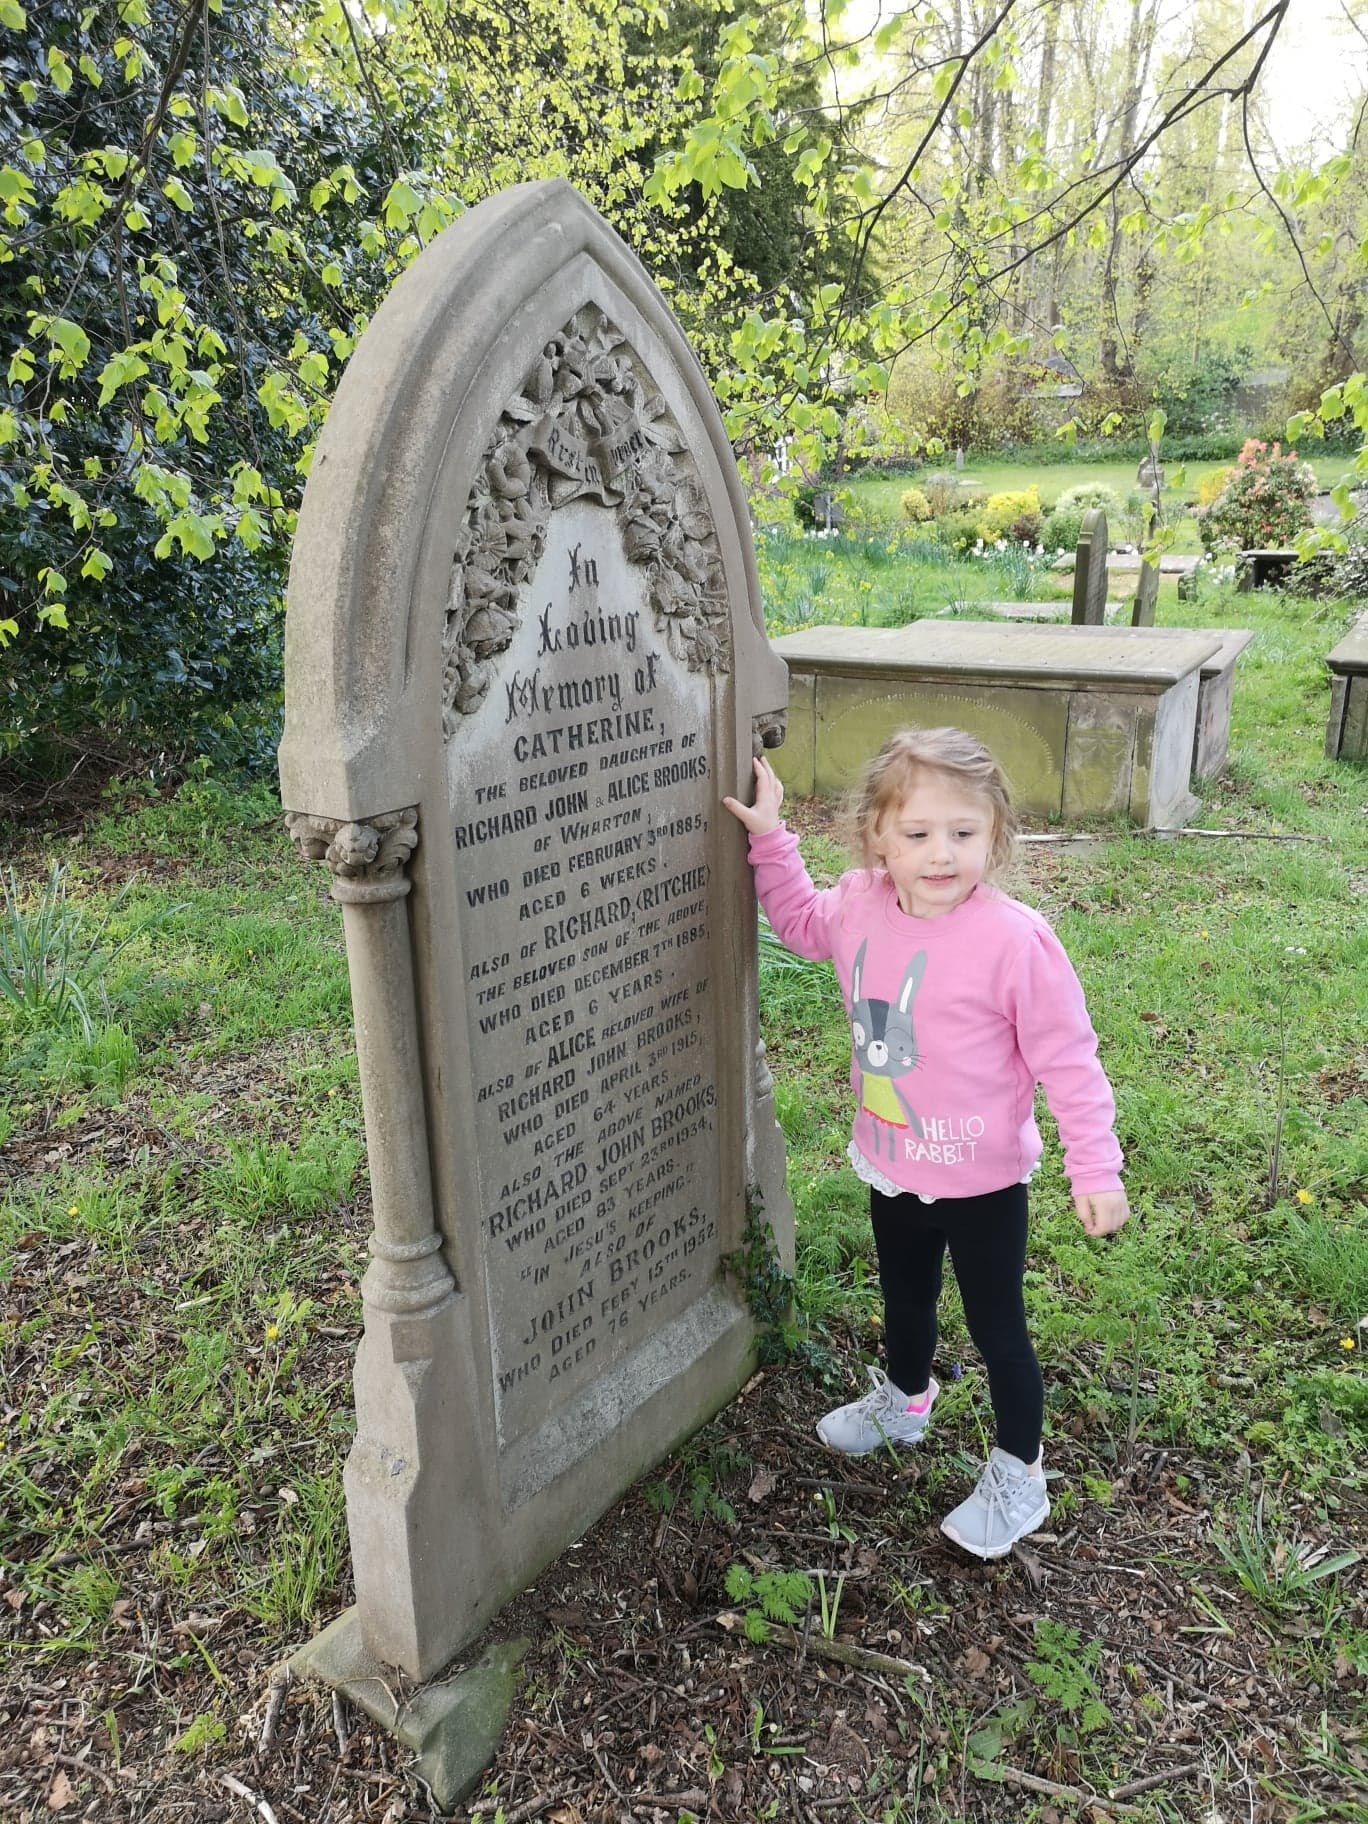 Lana stands with a cleaned up gravestone